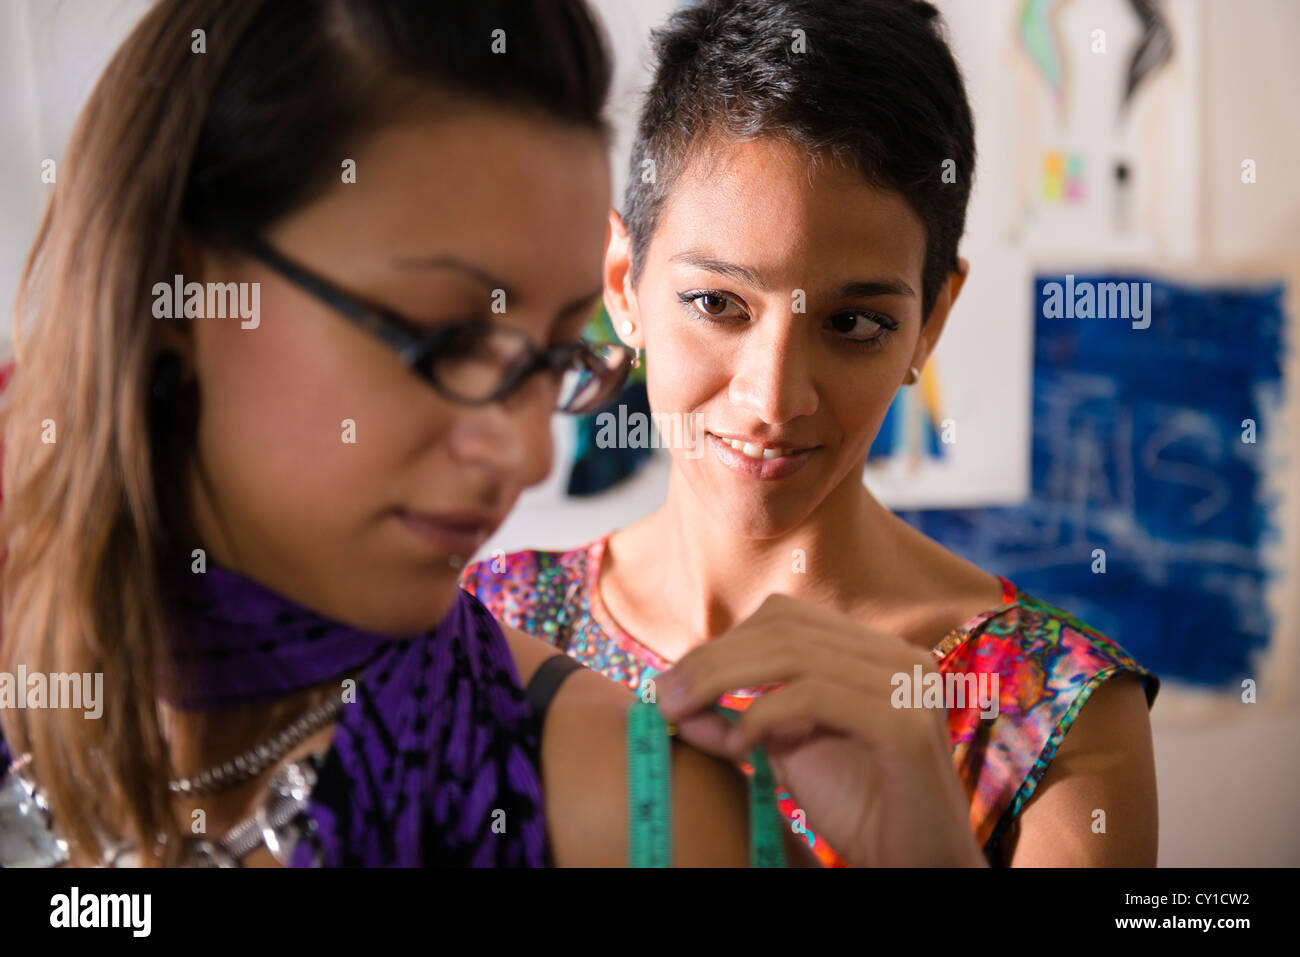 Fashion industry and young women, tailor and female customer in atelier for new dress - Stock Image